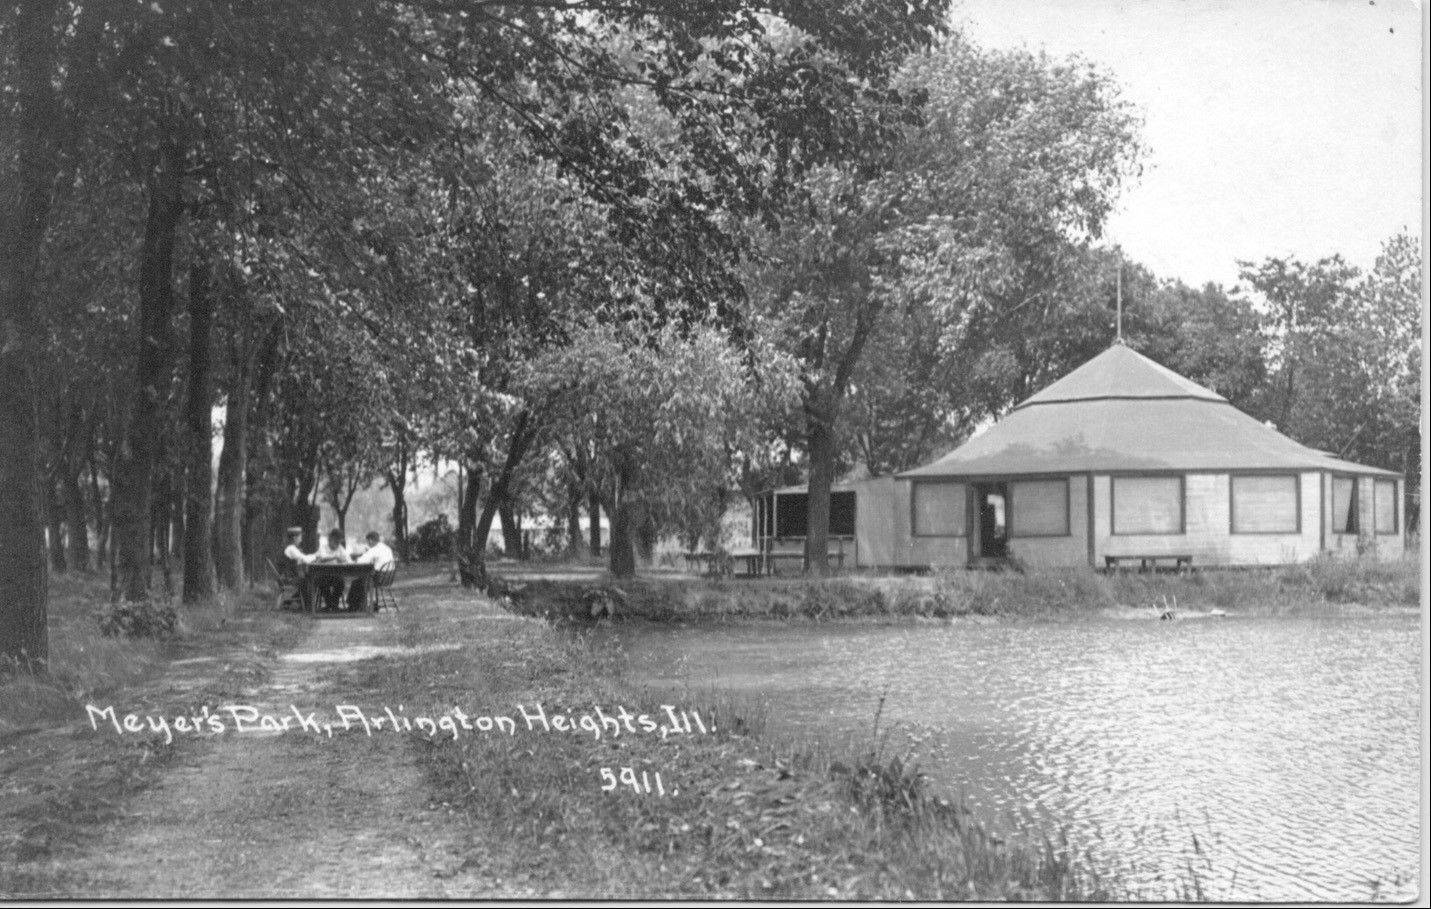 Meyer's Park and pond, with a few picnickers. Once a hot spot for activity, the park is now the site of the village hall.